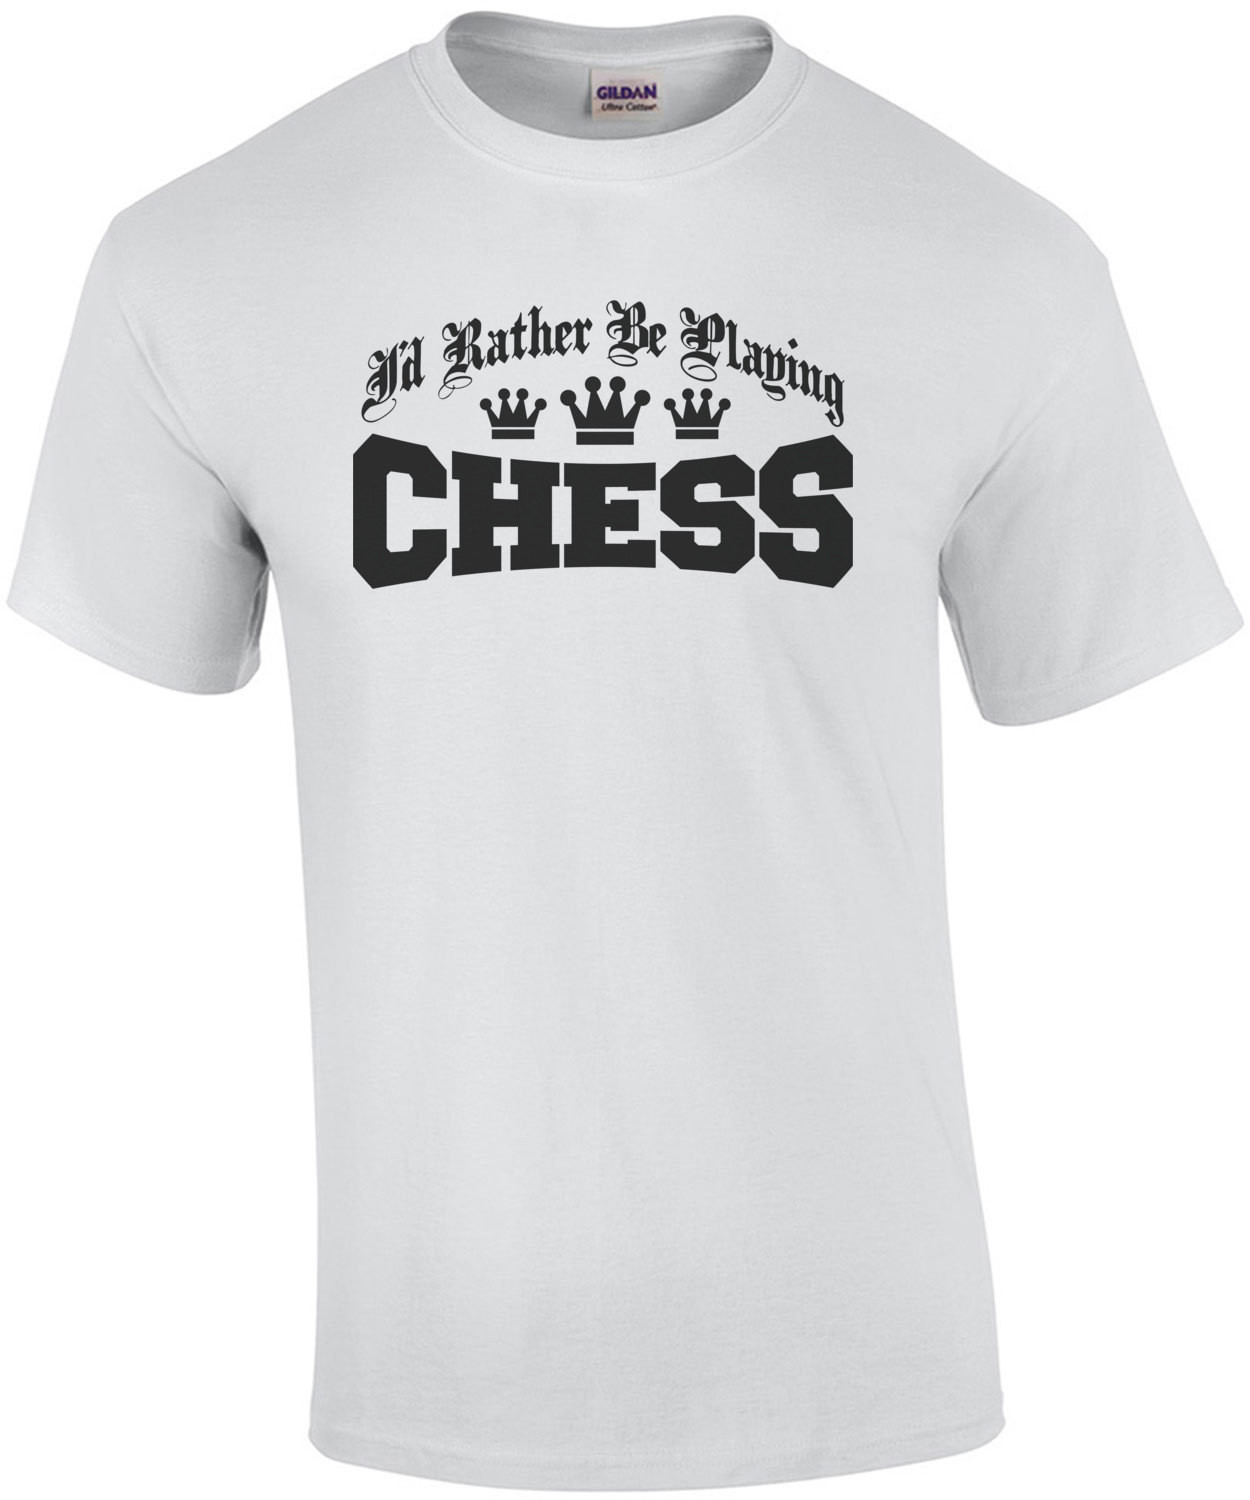 I'd Rather Be Playing Chess T-Shirt